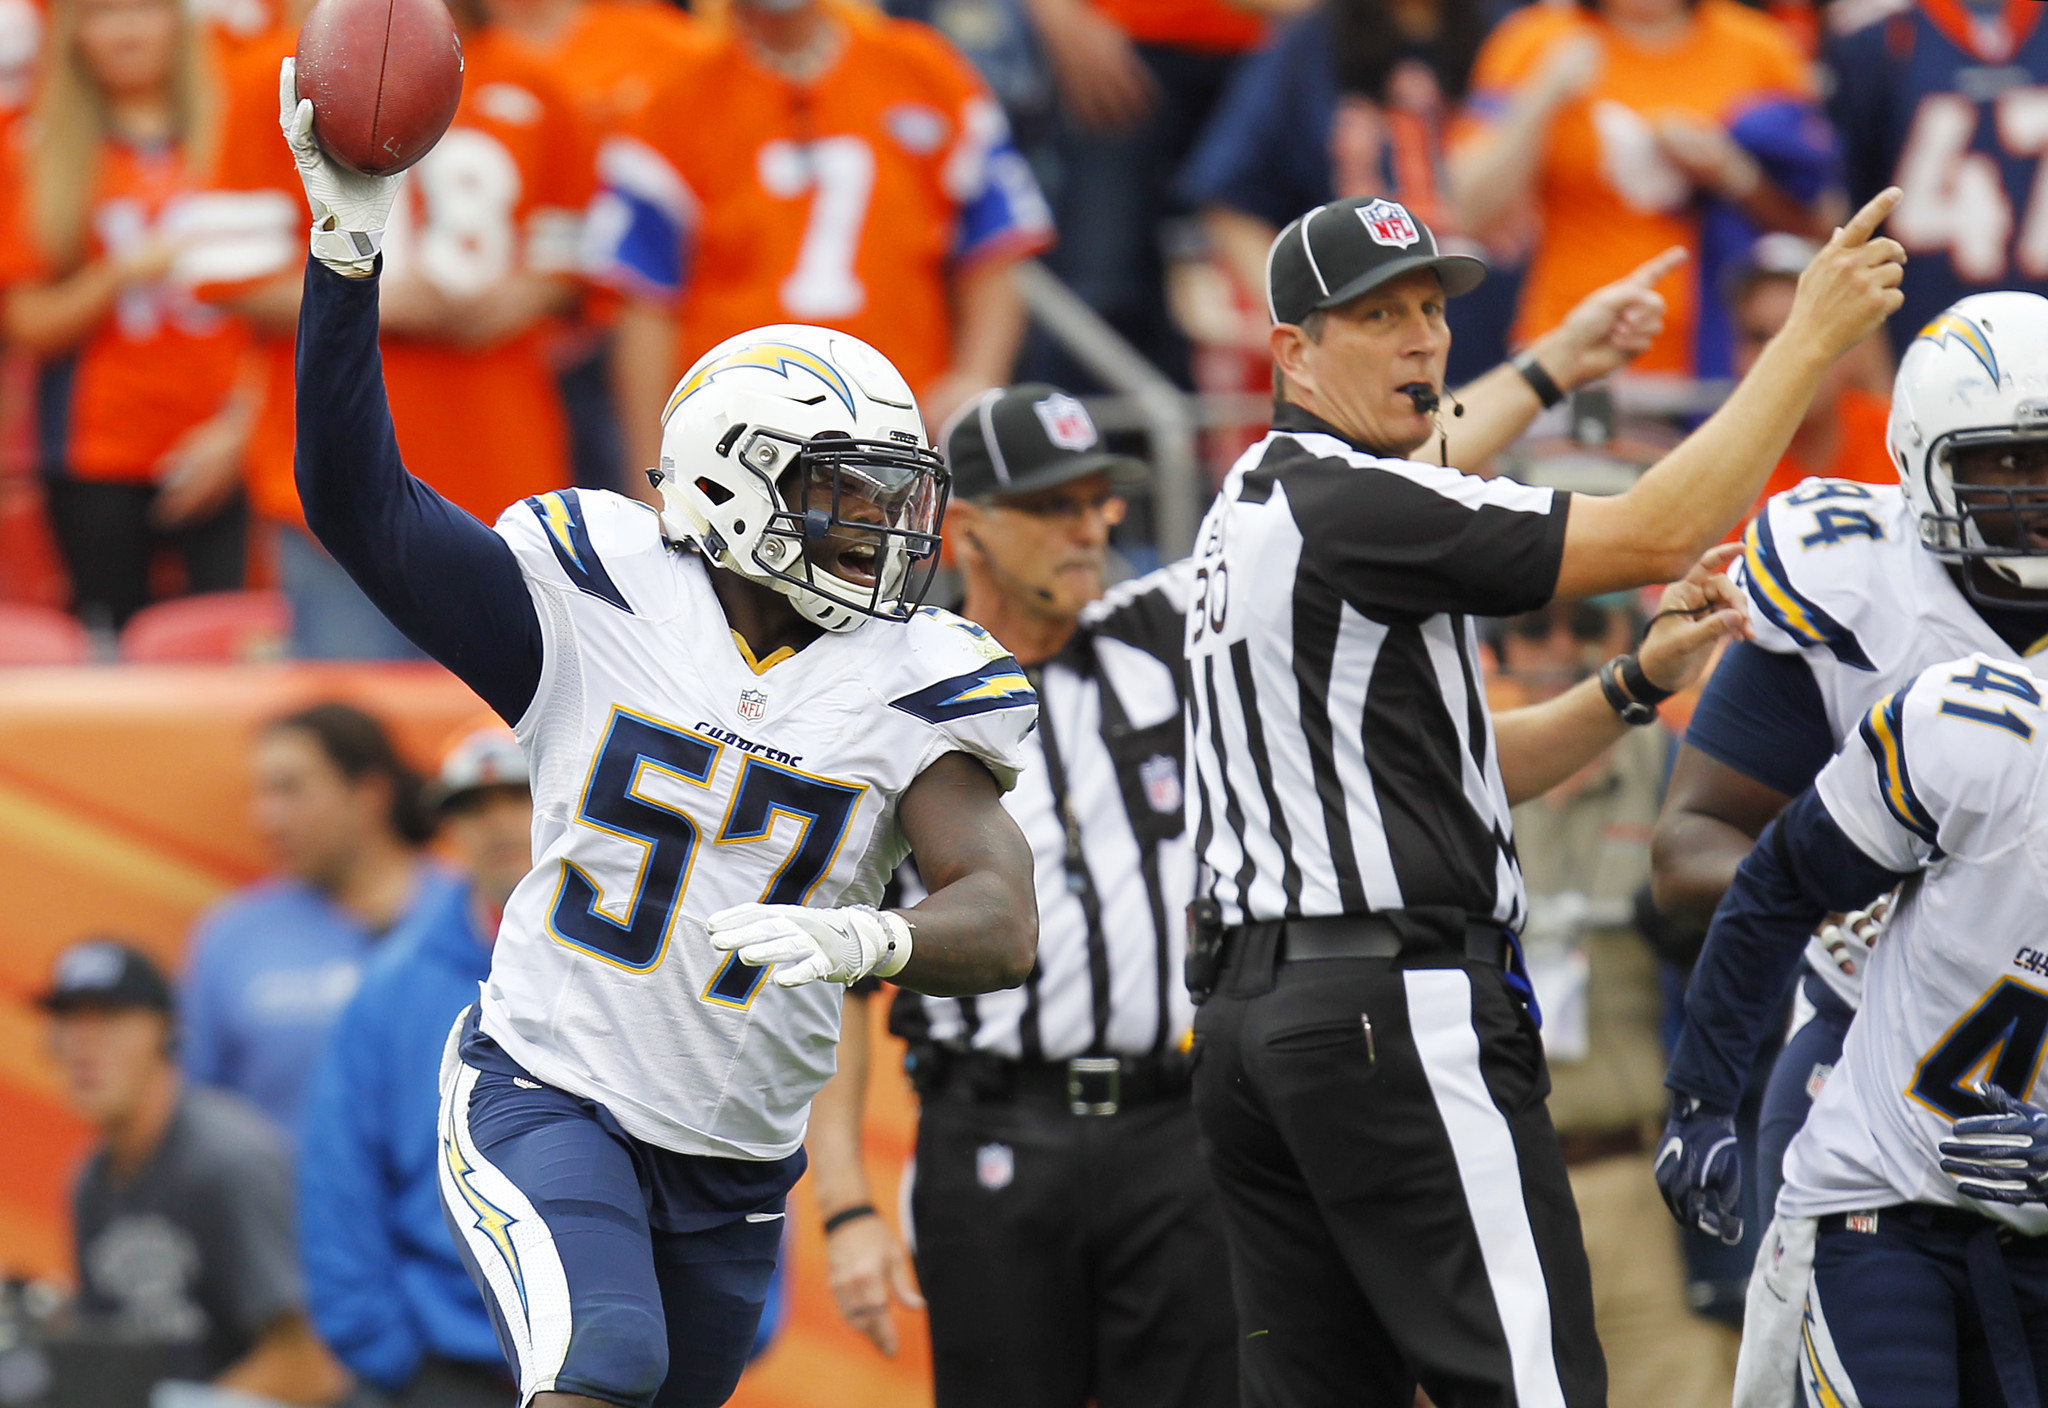 Chargers D Gets Good News On Health Front The San Diego